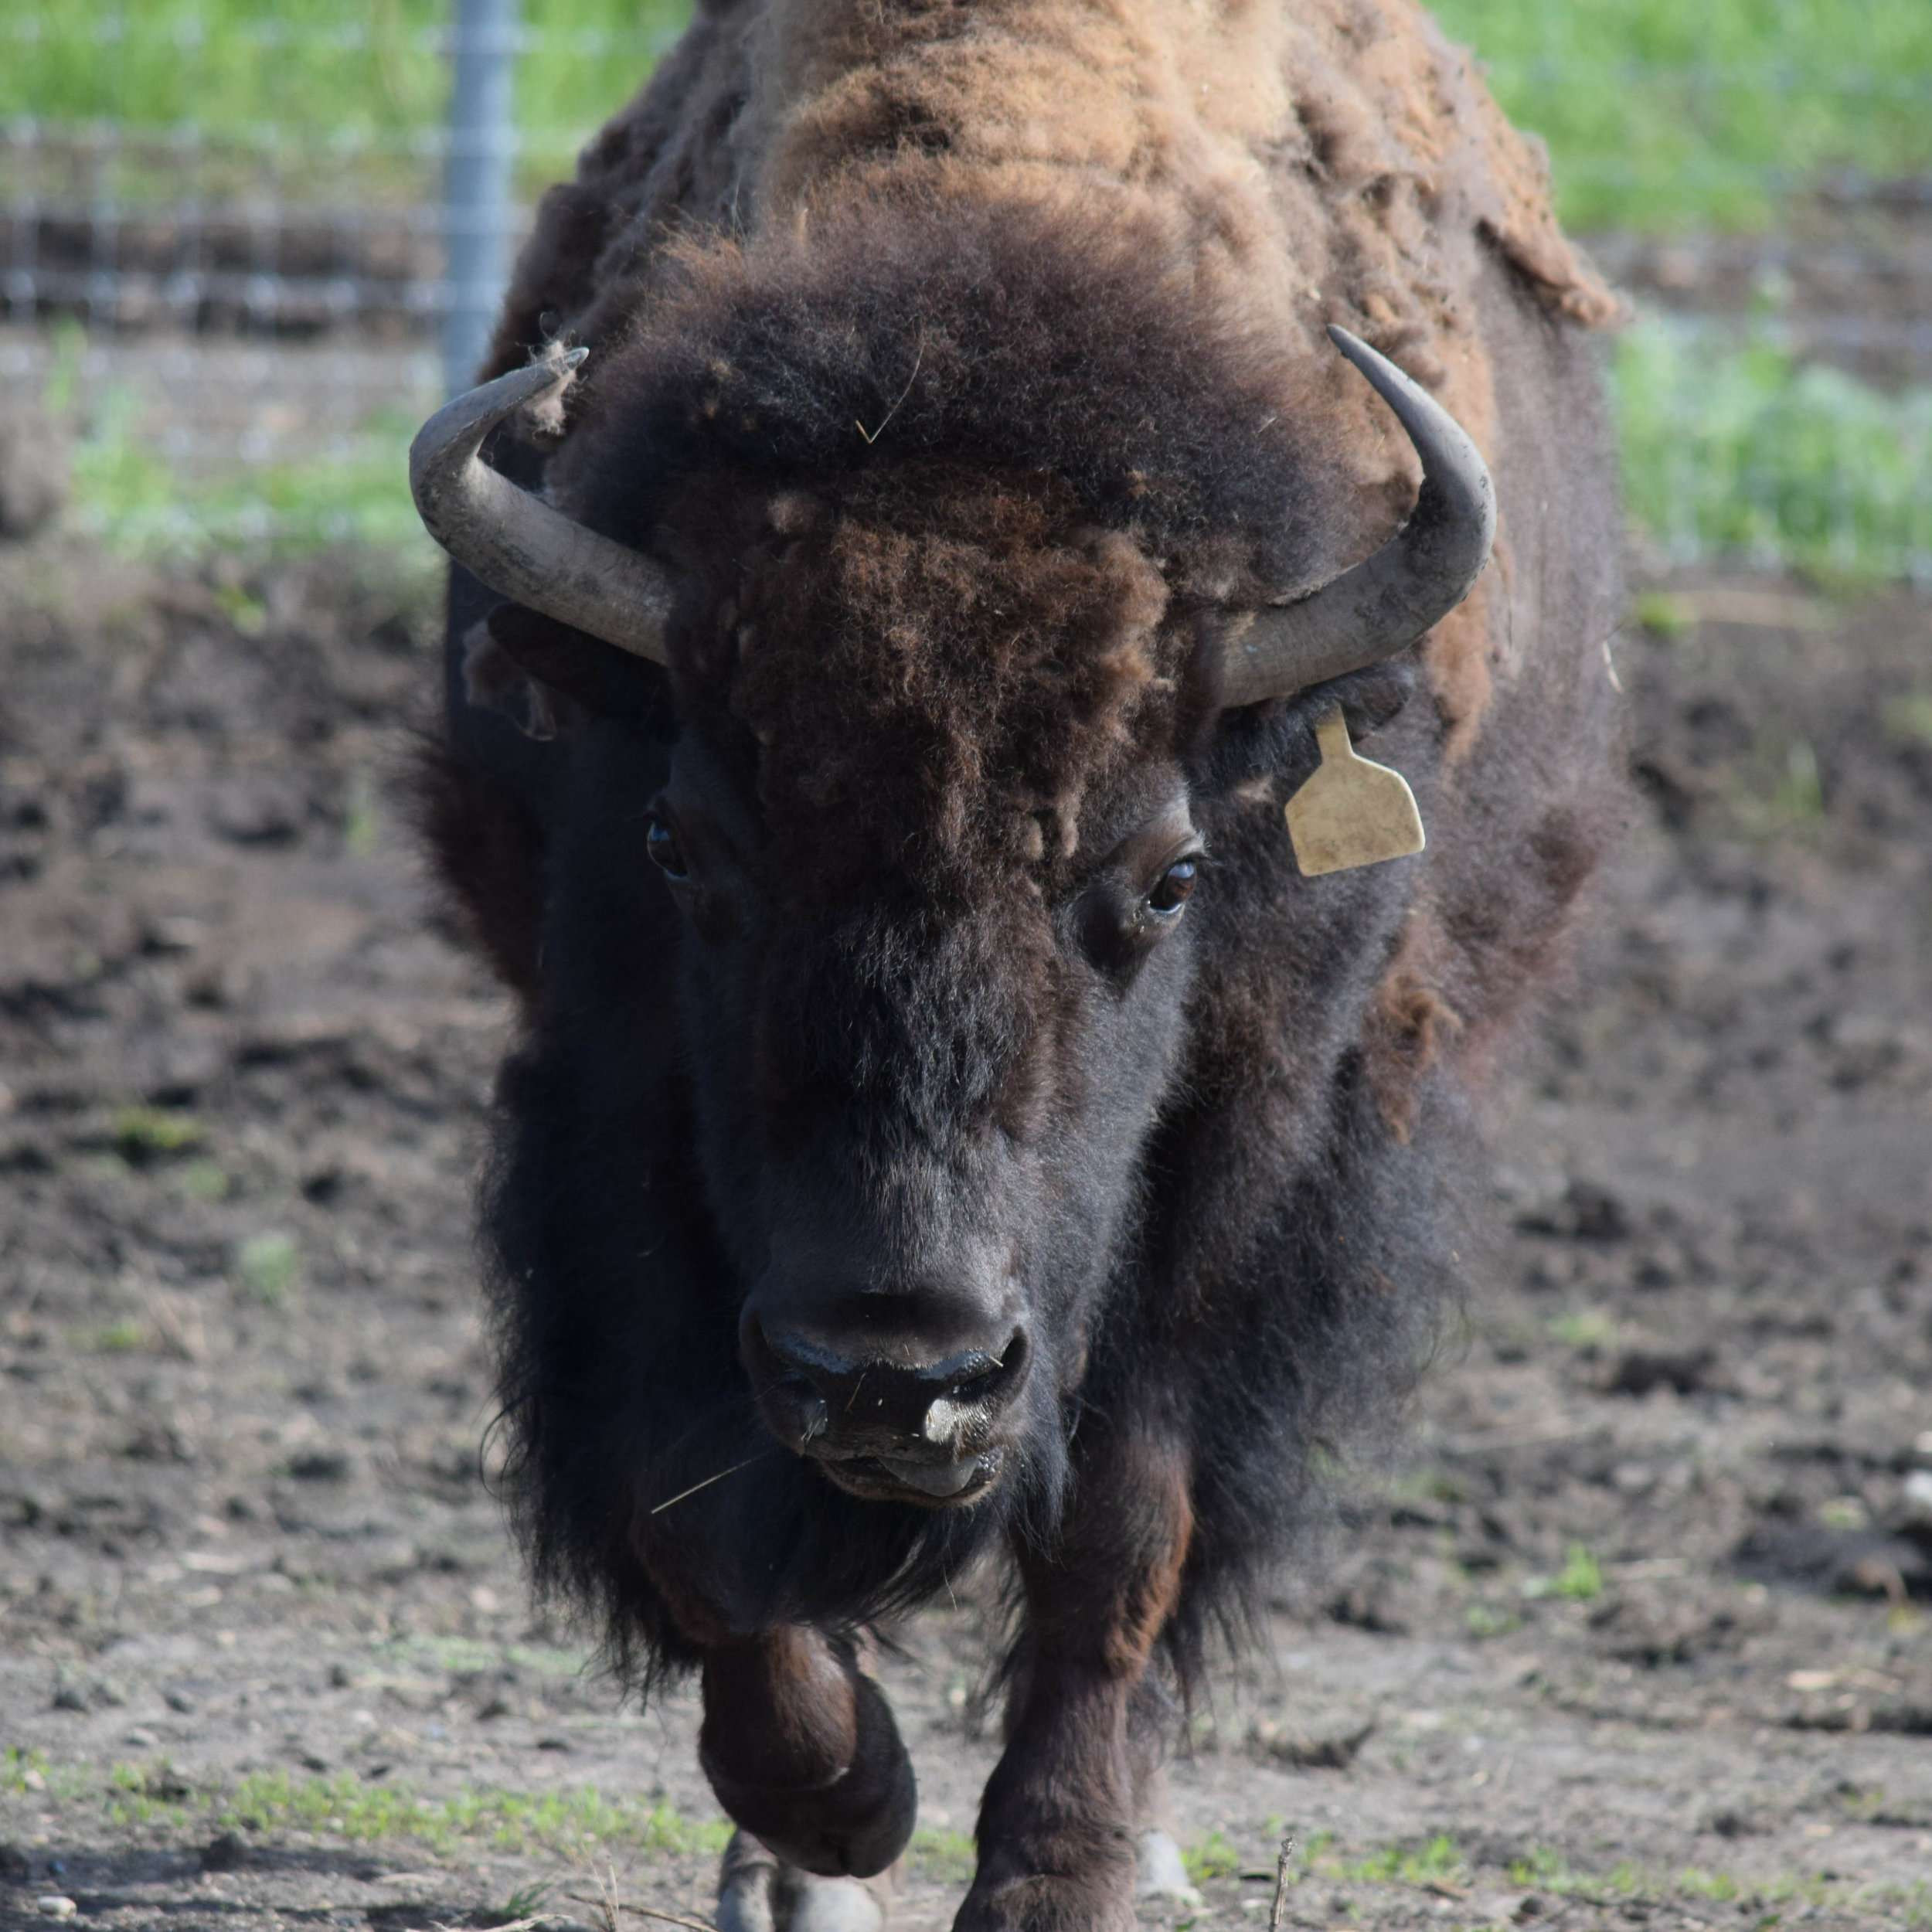 SPEEDY  was born a runt, and was rejected by her mother. She was raised as a pet, and became so habituated that when we tried to release her into the wild, she wouldn't go. She's still small for an American bison — about 750 pounds — but otherwise healthy.